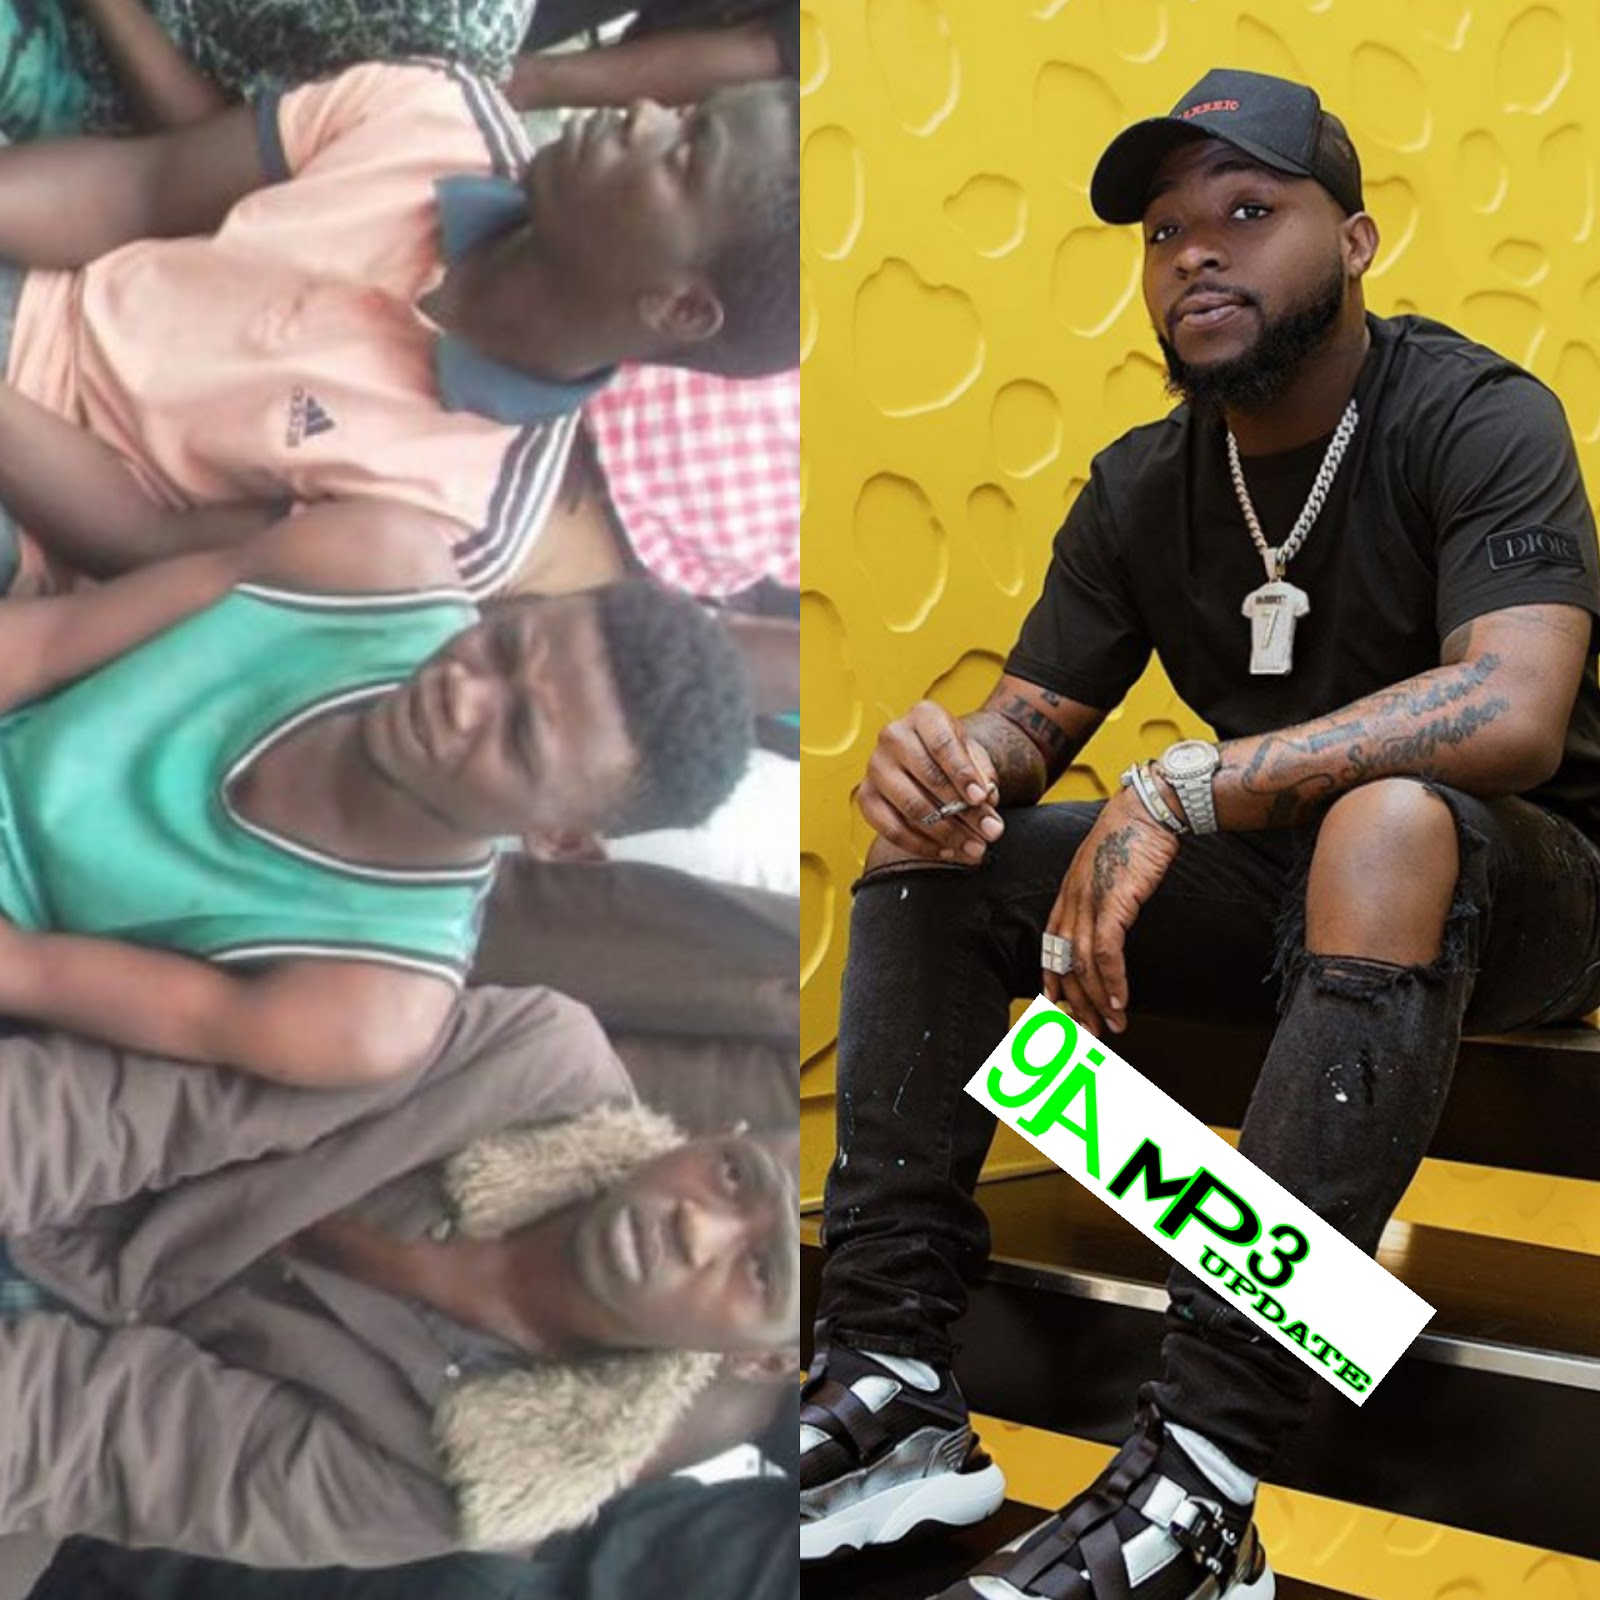 I Joined Cult To Meet Davido, I Was Told He Is Member Of Aiye — Suspect